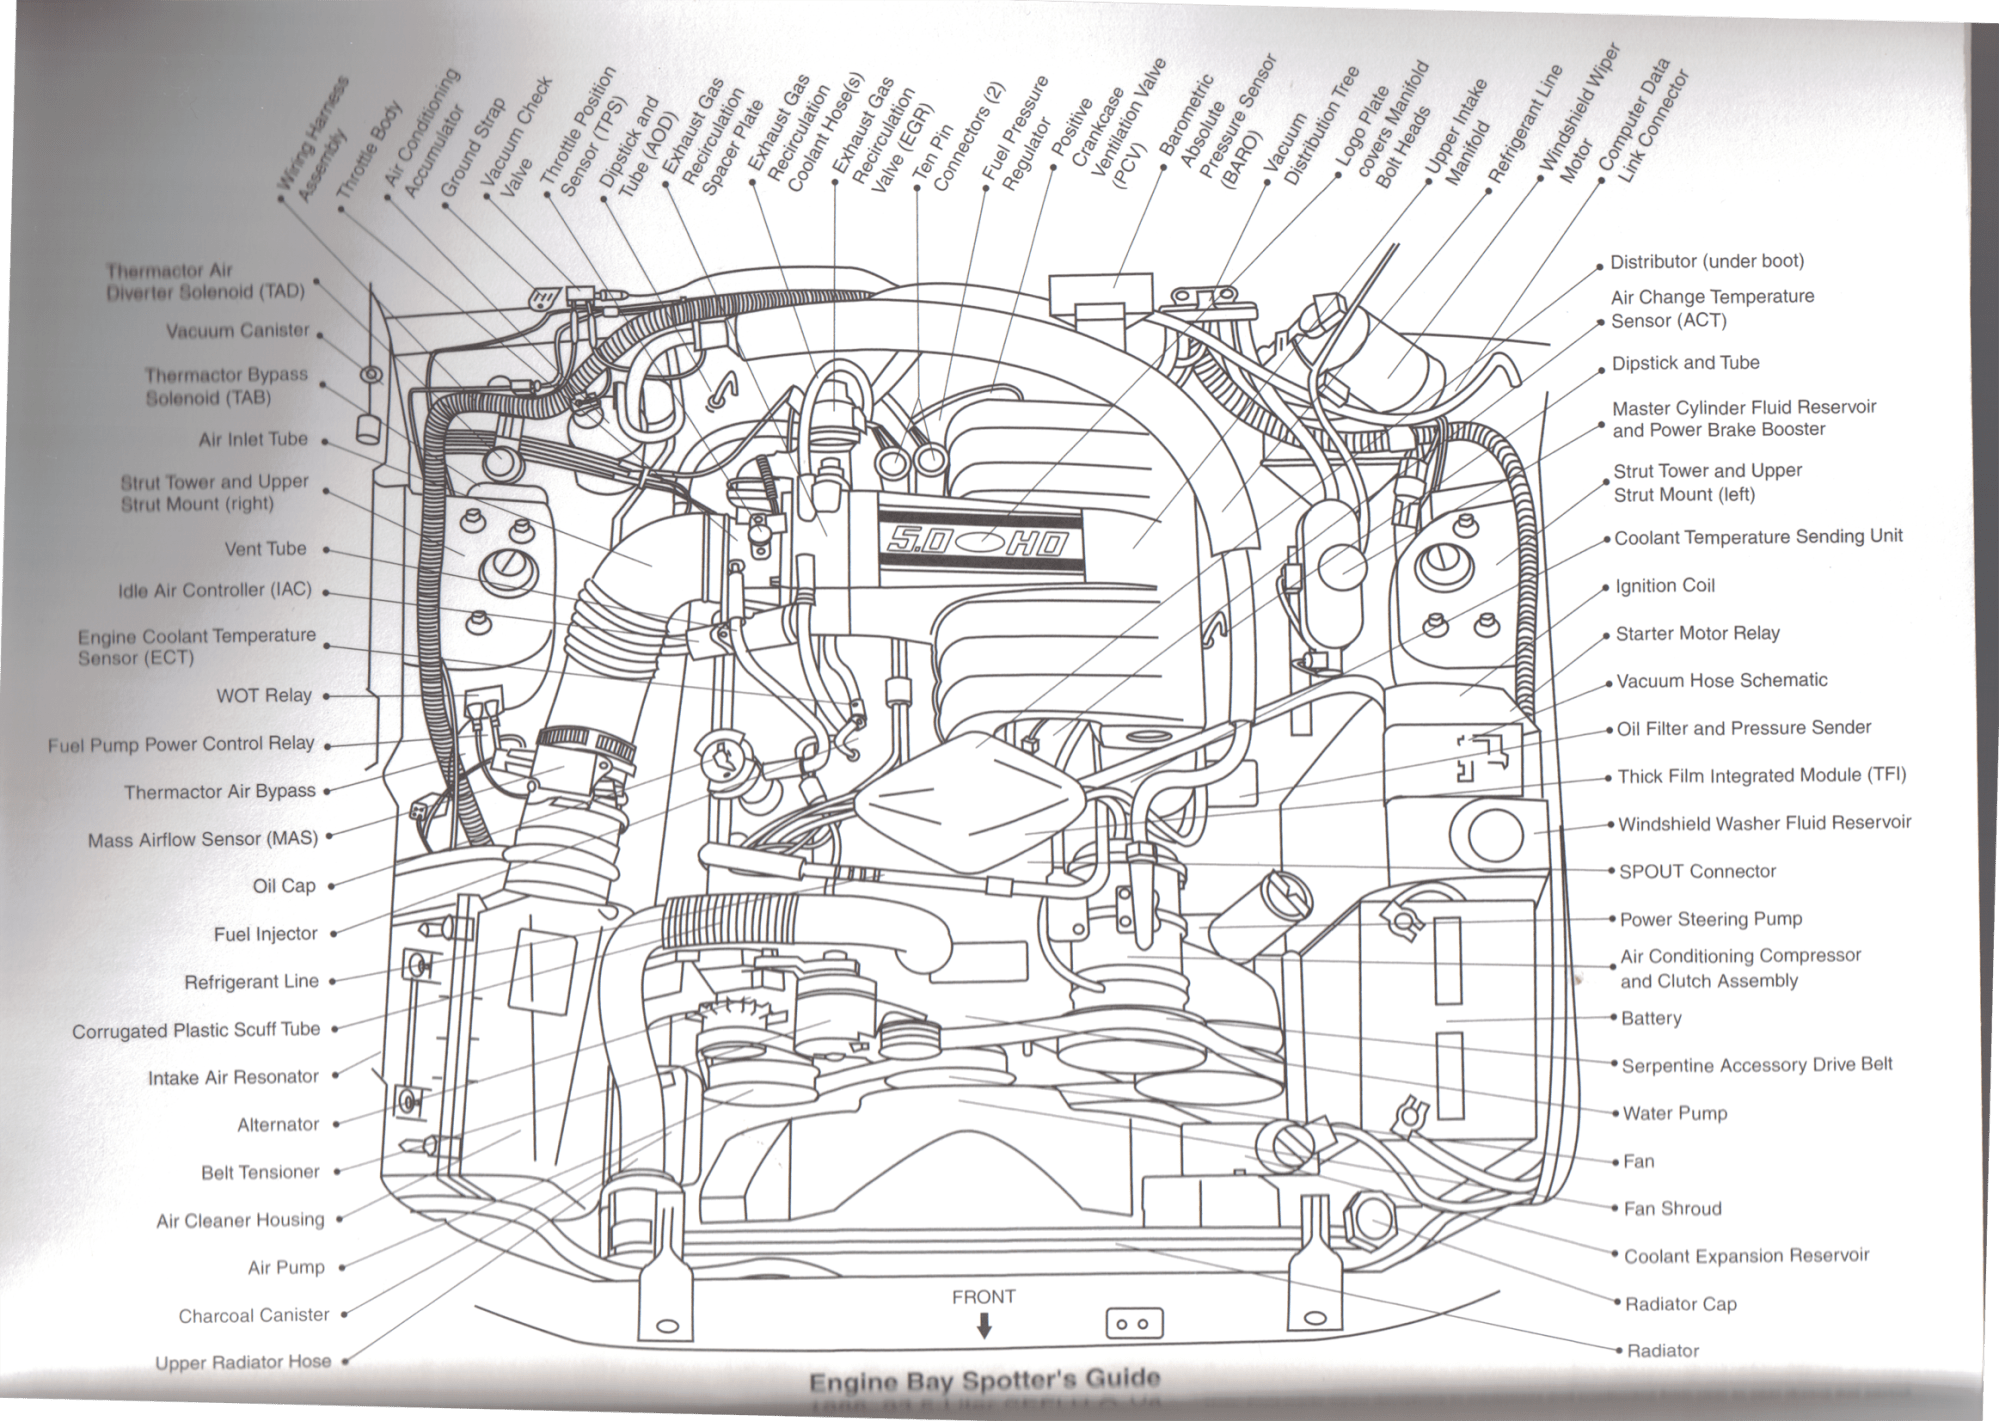 hight resolution of 1987 1993 foxbody 5 0 sefi v8 engine part diagram